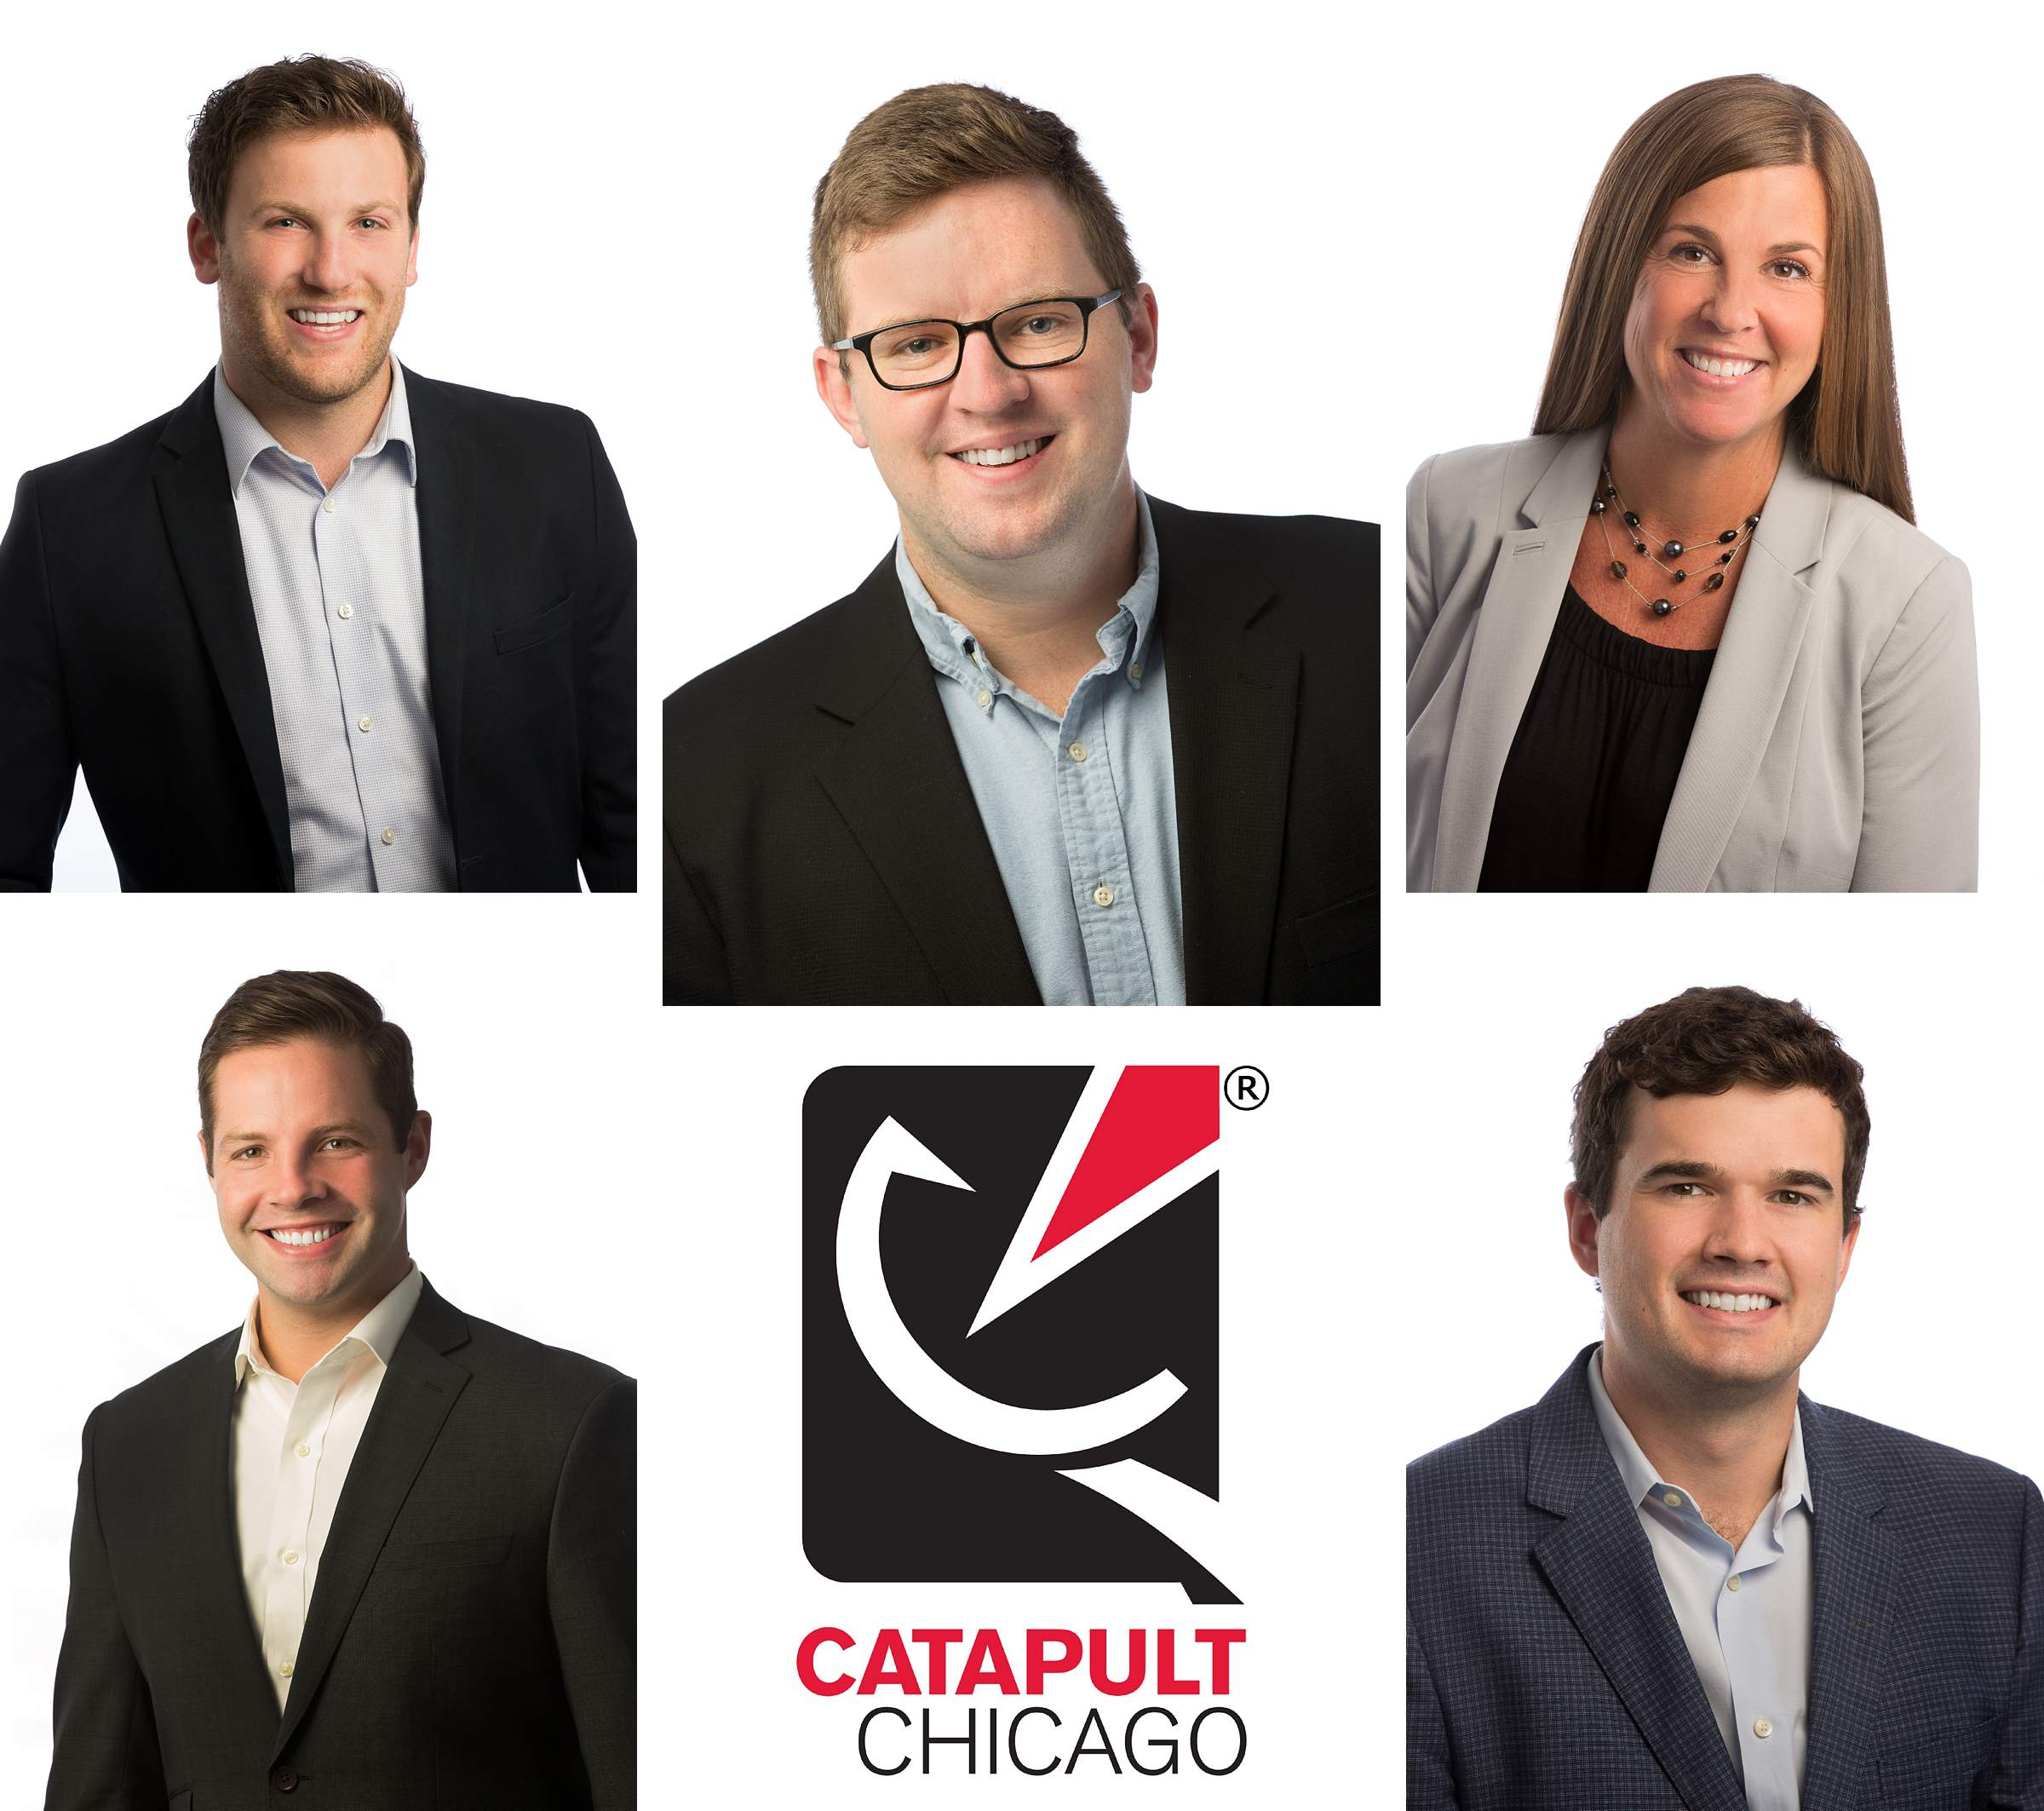 Chicago business portraits catapult startup incubator - on site photographer